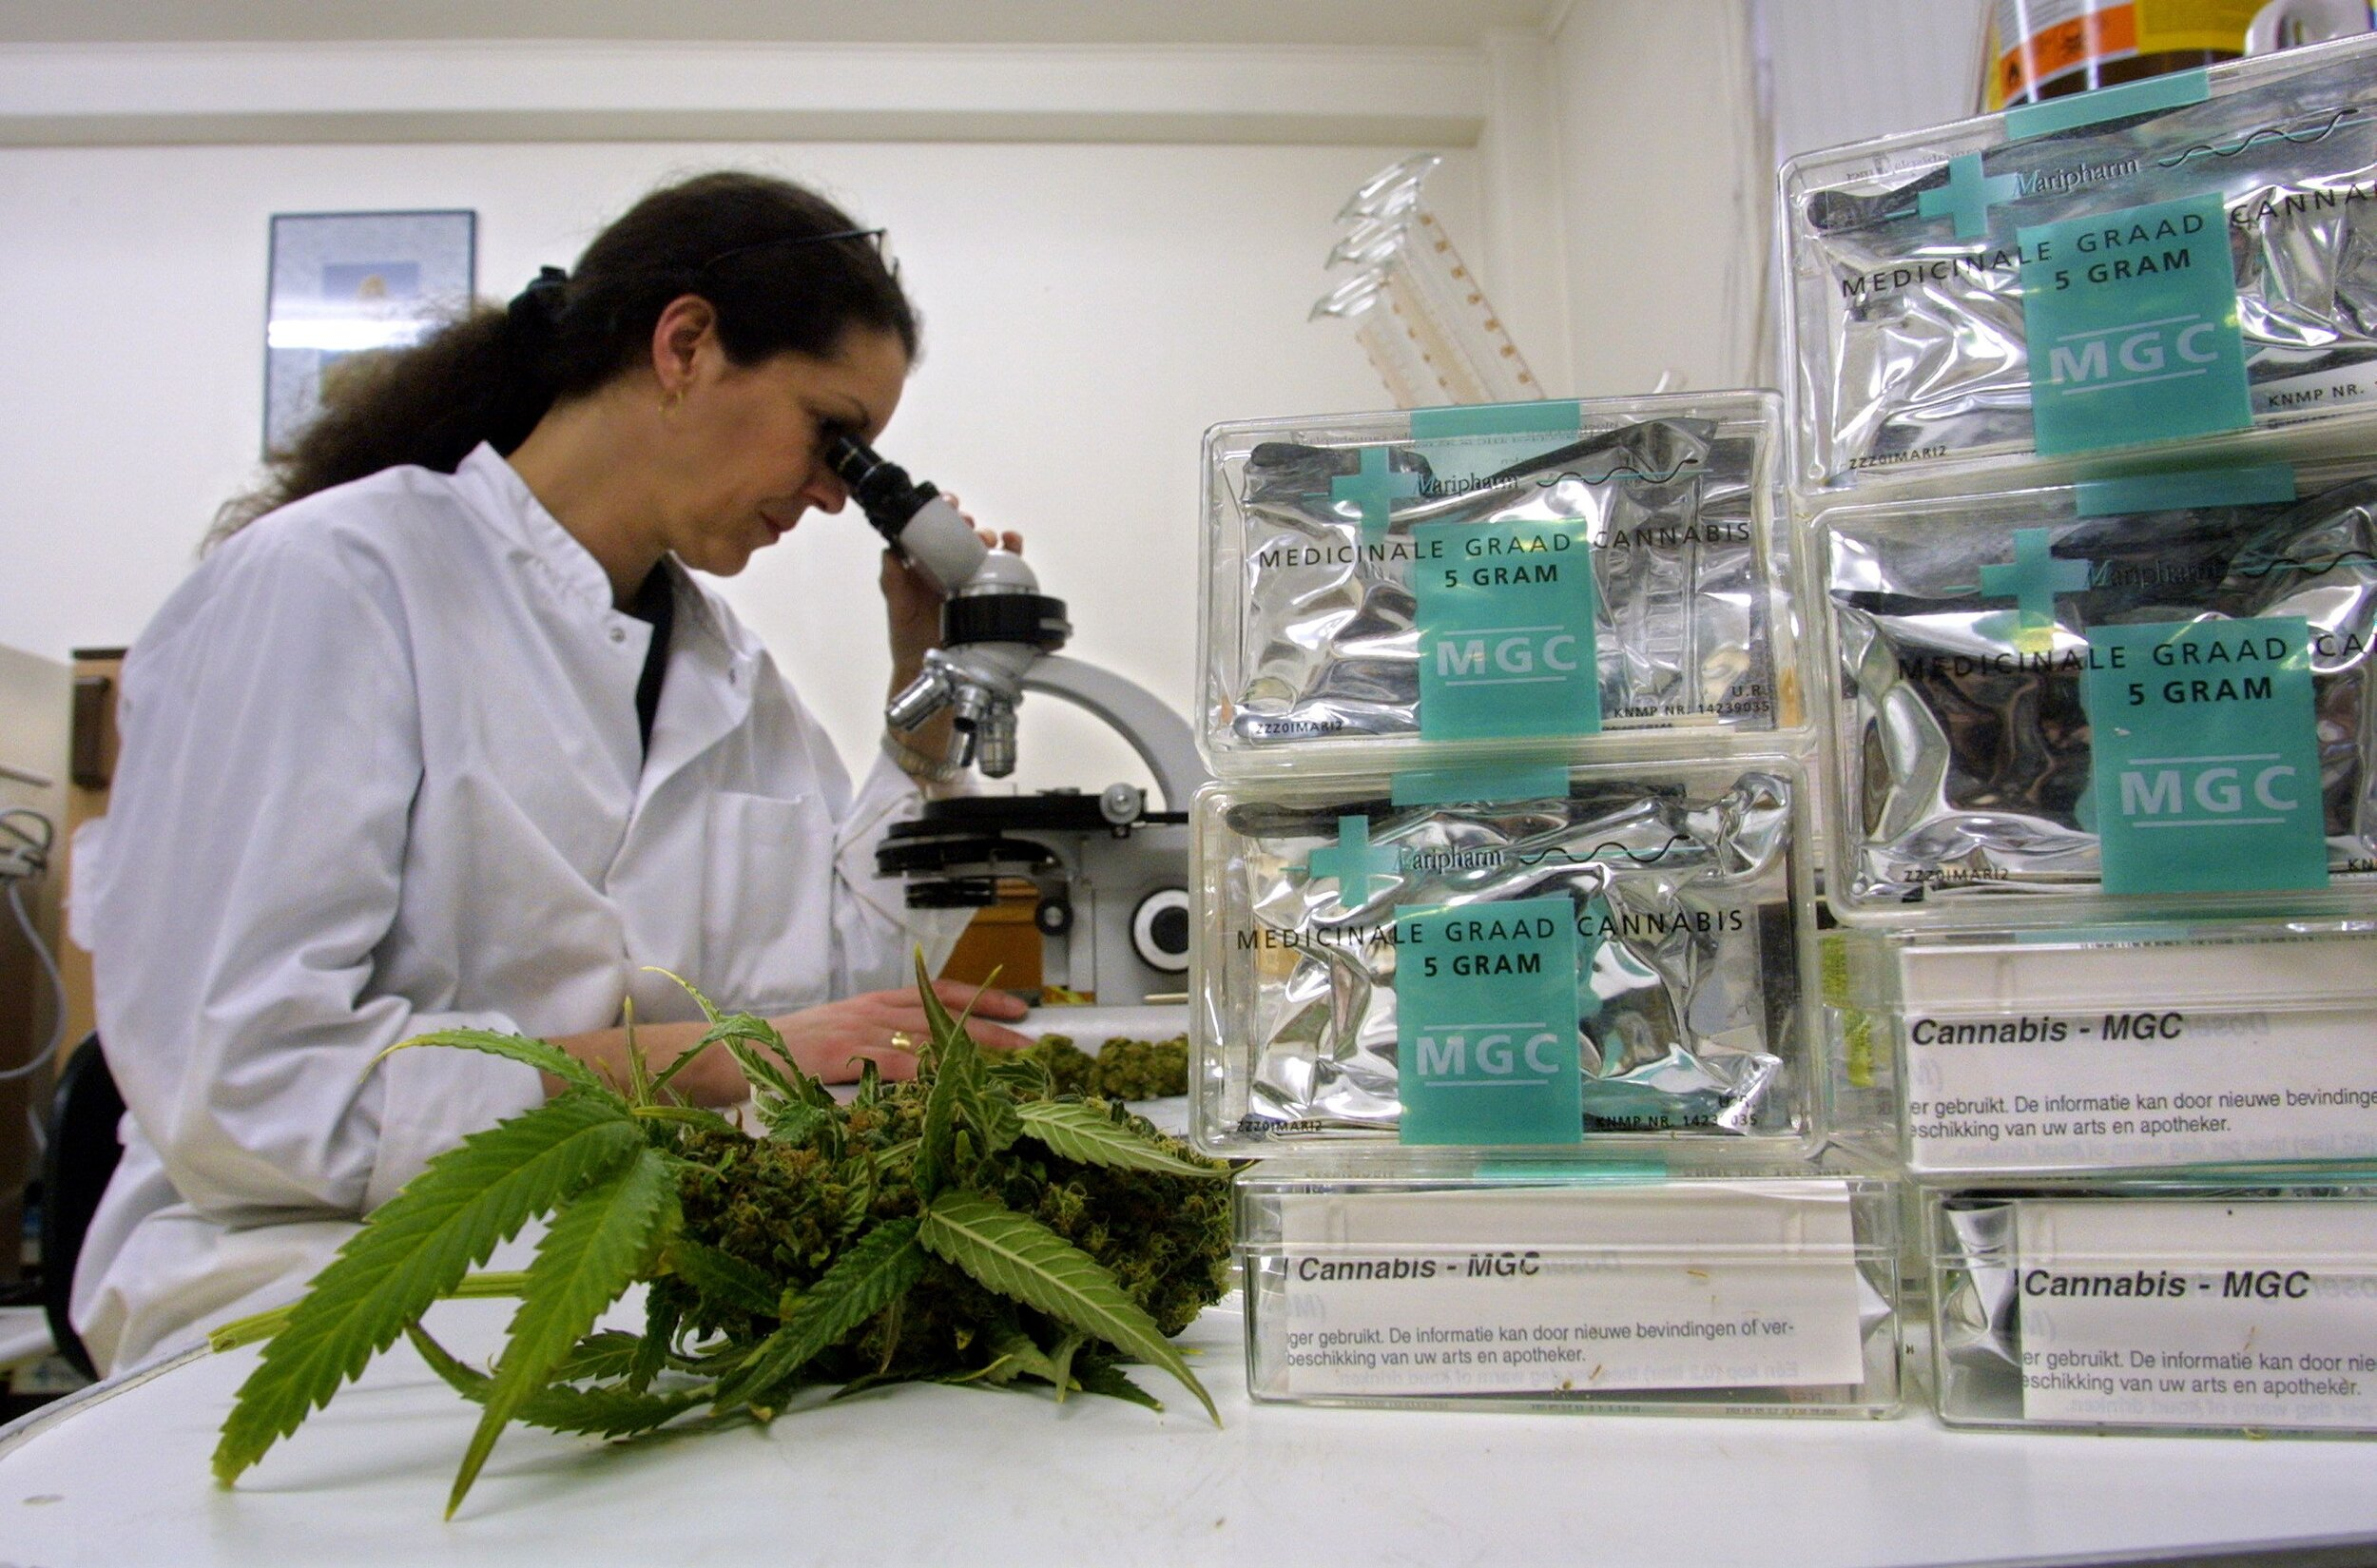 Assistant studies marijuana in the Maripharma Laboratory in Rotterdam, Netherlands. MICHEL PORRO/   GETTY IMAGES